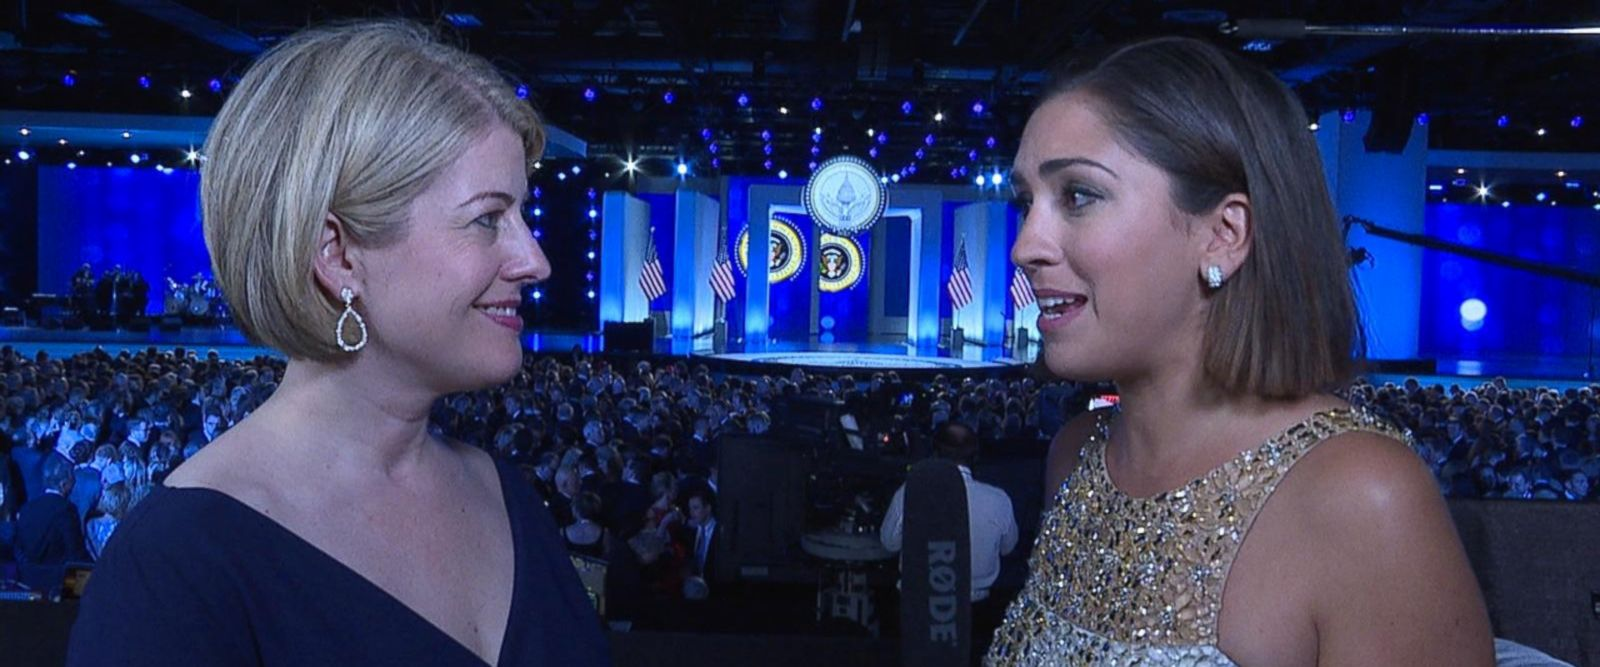 VIDEO: Presidential Inaugural Committee CEO Talks Fashion and Entertainment at Inaugural Ball